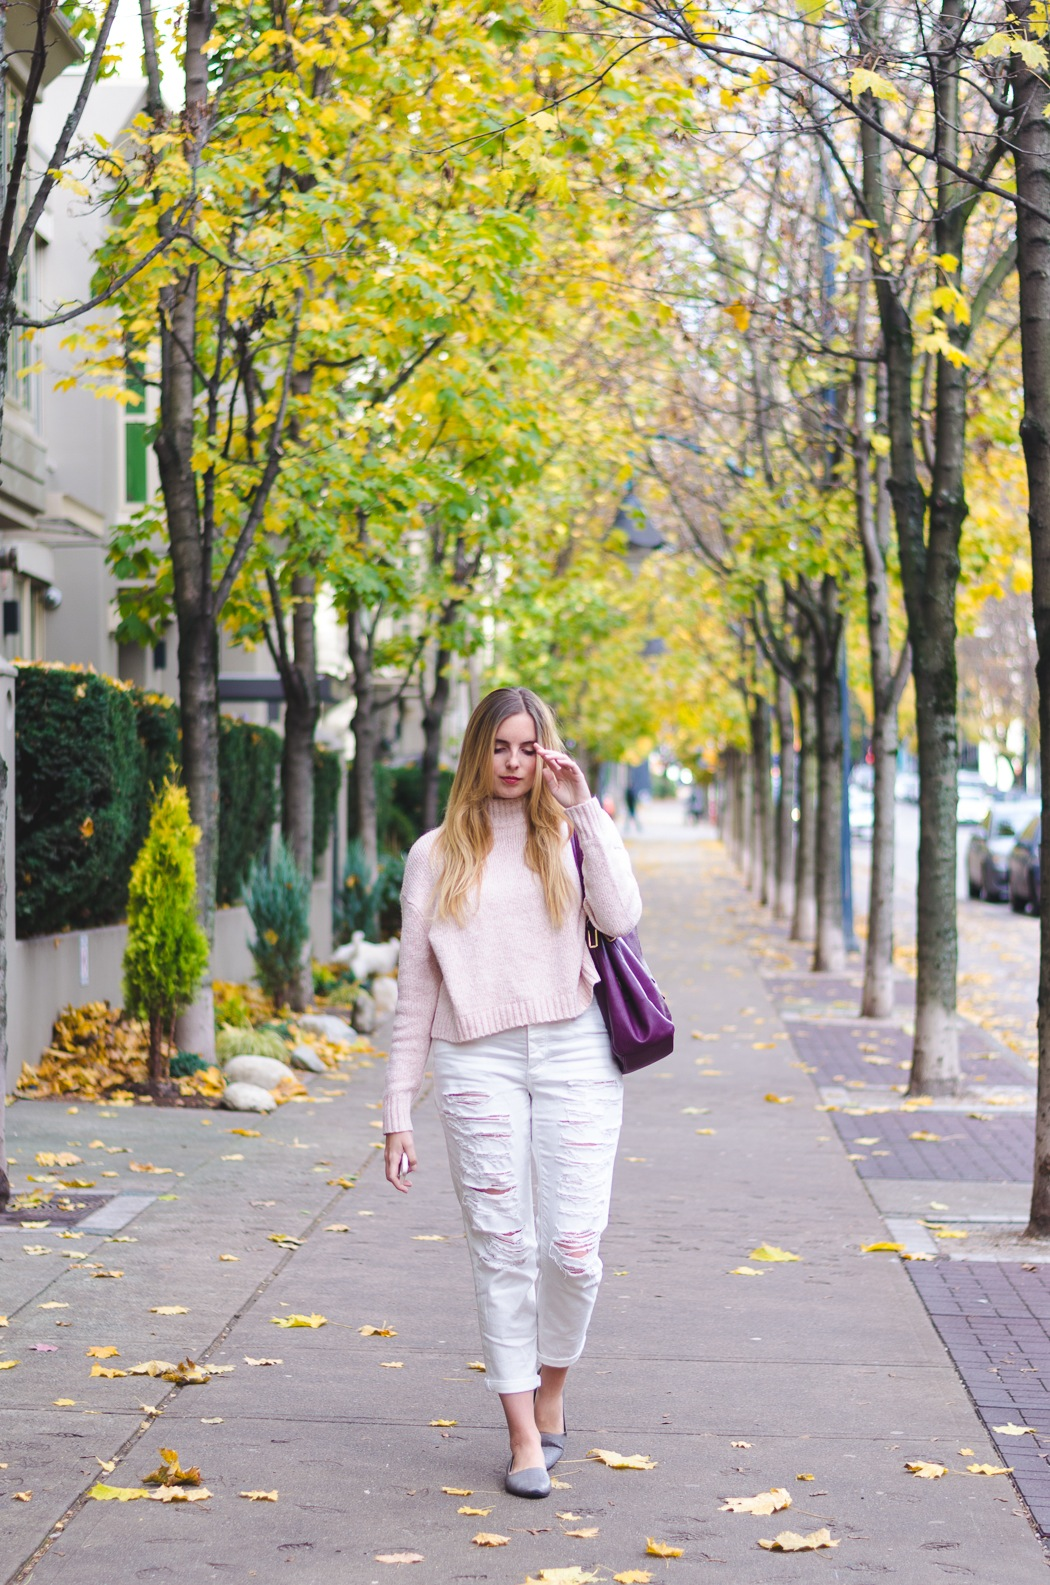 the urban umbrella style blog, vancouver style blog, vancouver style blogger, vancouver style bloggers, vancouver fashion blog, vancouver lifestyle blog, vancouver health blog, vancouver fitness blog, vancouver travel blog, canadian fashion blog, canadian style blog, canadian lifestyle blog, canadian health blog, canadian fitness blog, canadian travel blog, west coast style, bree aylwin, 2016 resolutions, goals for 2016, how to be happy being you, how to love yourself, best beauty blog, best beauty blogger, best travel blogs, top vancouver fashion bloggers, top fashion blogs, best style blogs 2015, popular fashion blogs, top style blogs, top lifestyle blogs, top fitness blogs, top health blogs, top travel blogs